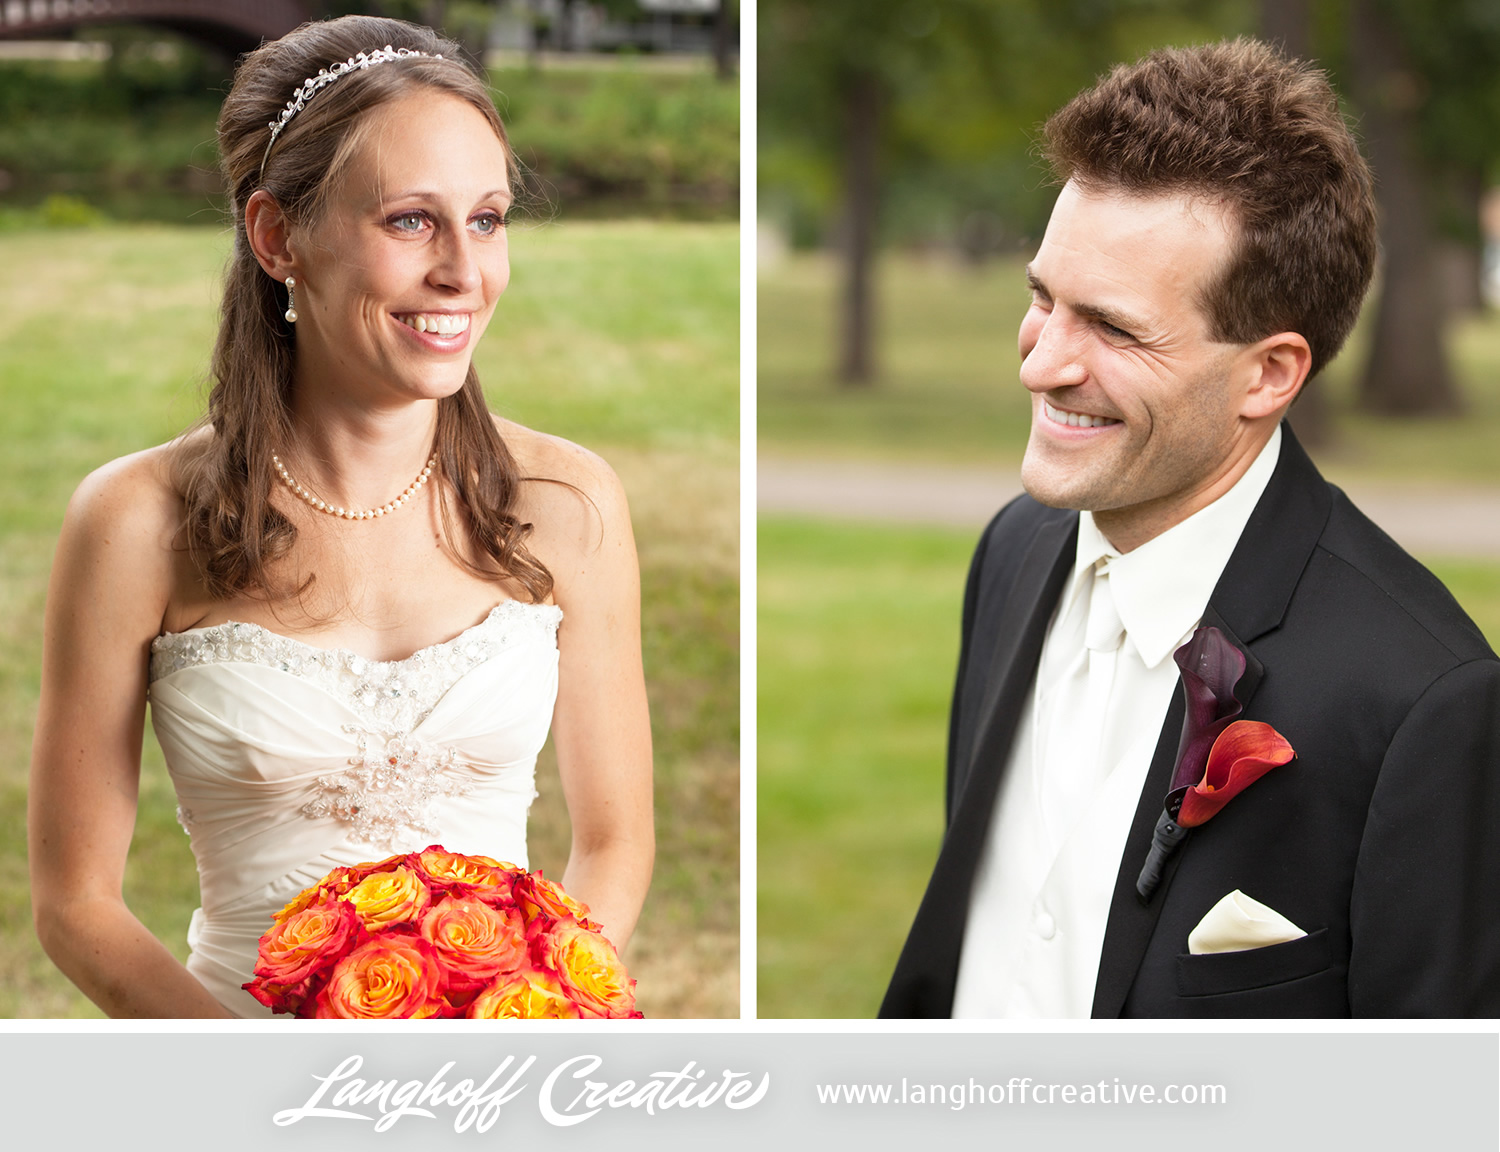 PlainfieldWedding-2013-LanghoffCreative-MattErin-11-photo.jpg